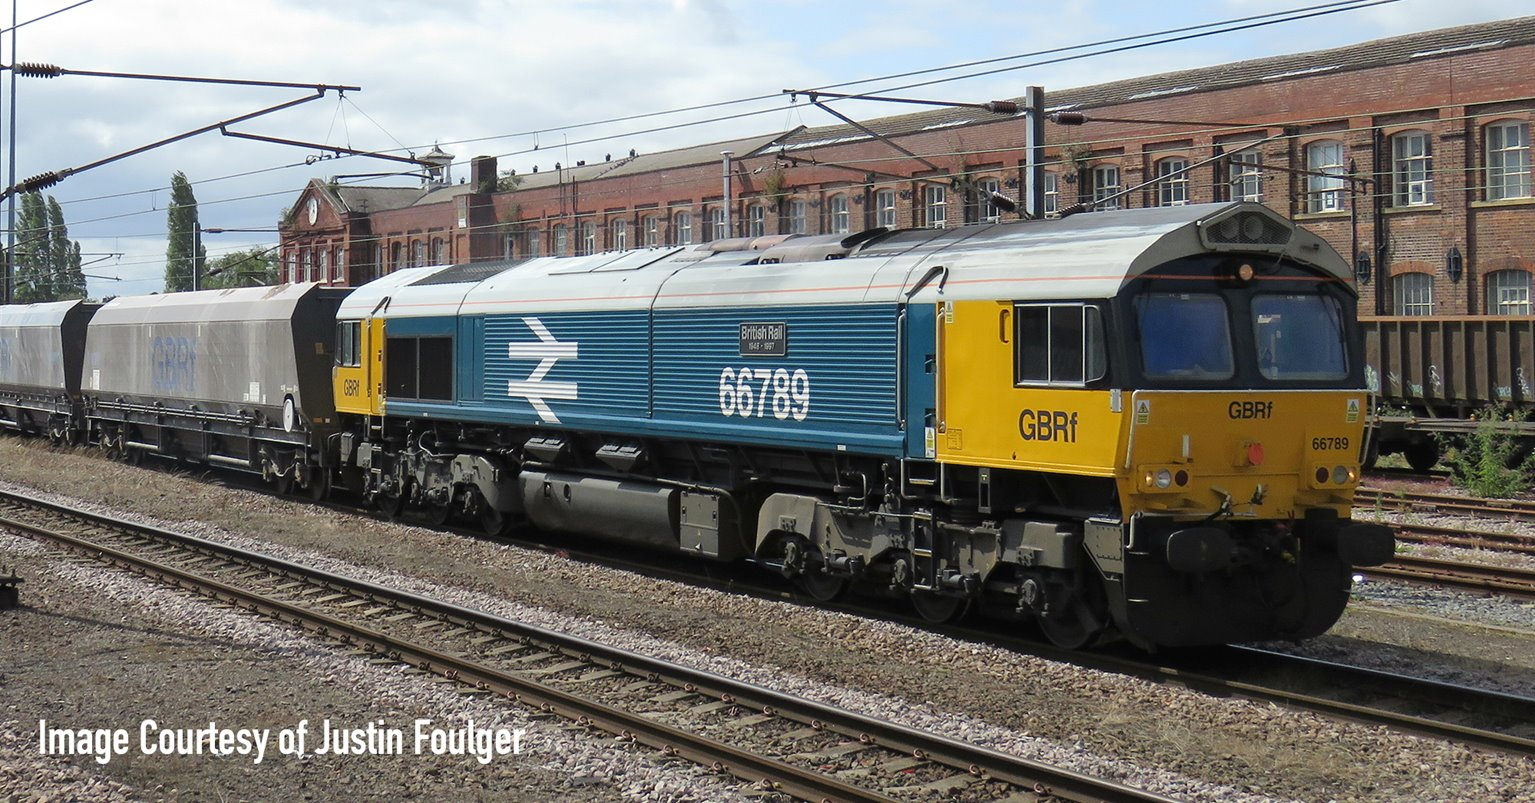 Class 66 789 GBRF 'British Rail 1948-1997' BR Blue Large Logo Diesel Locomotive DCC Fitted